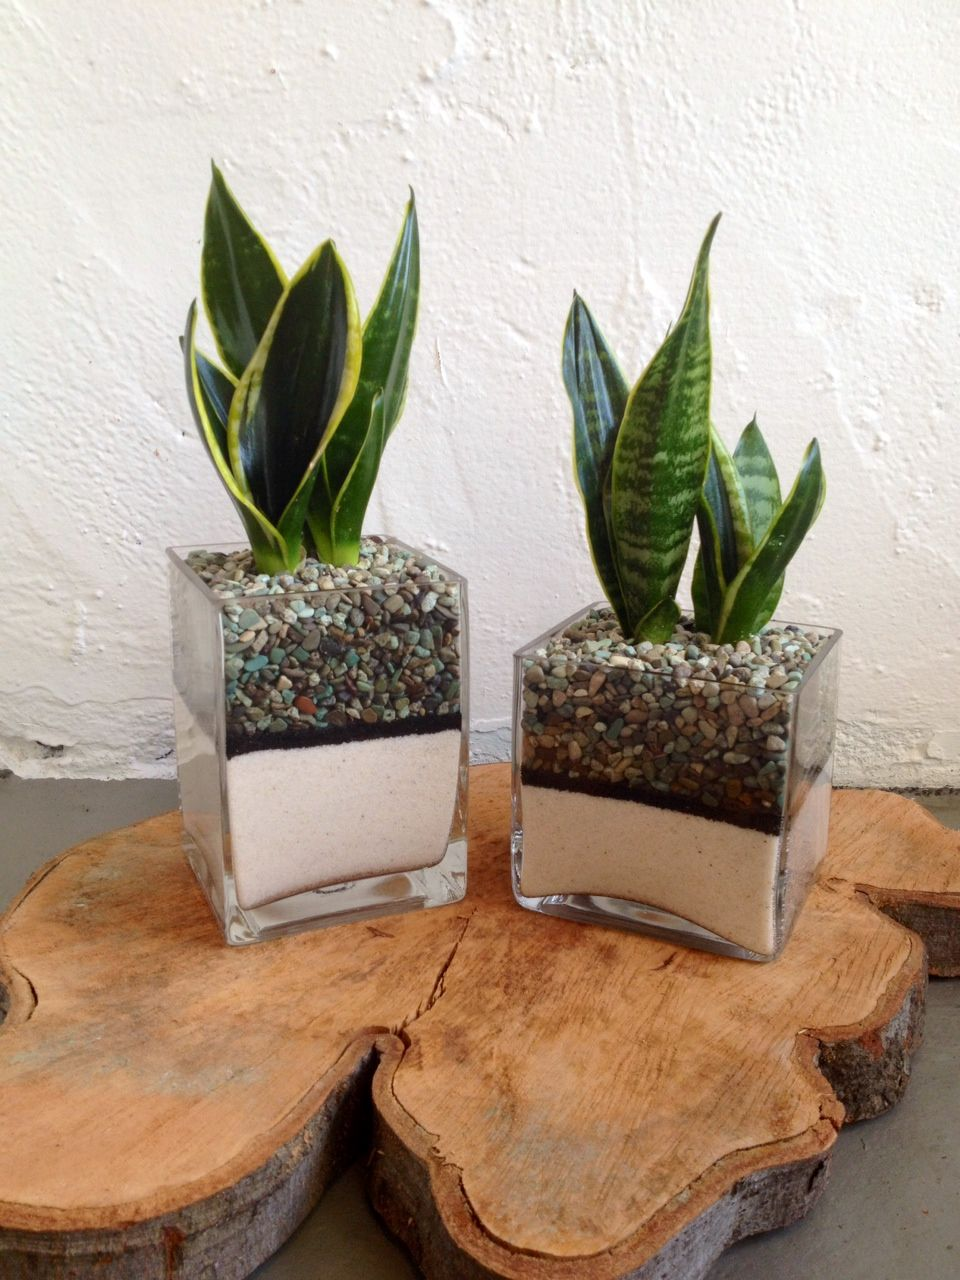 Sansevieria in glass with pebbles and sand on a wood burl